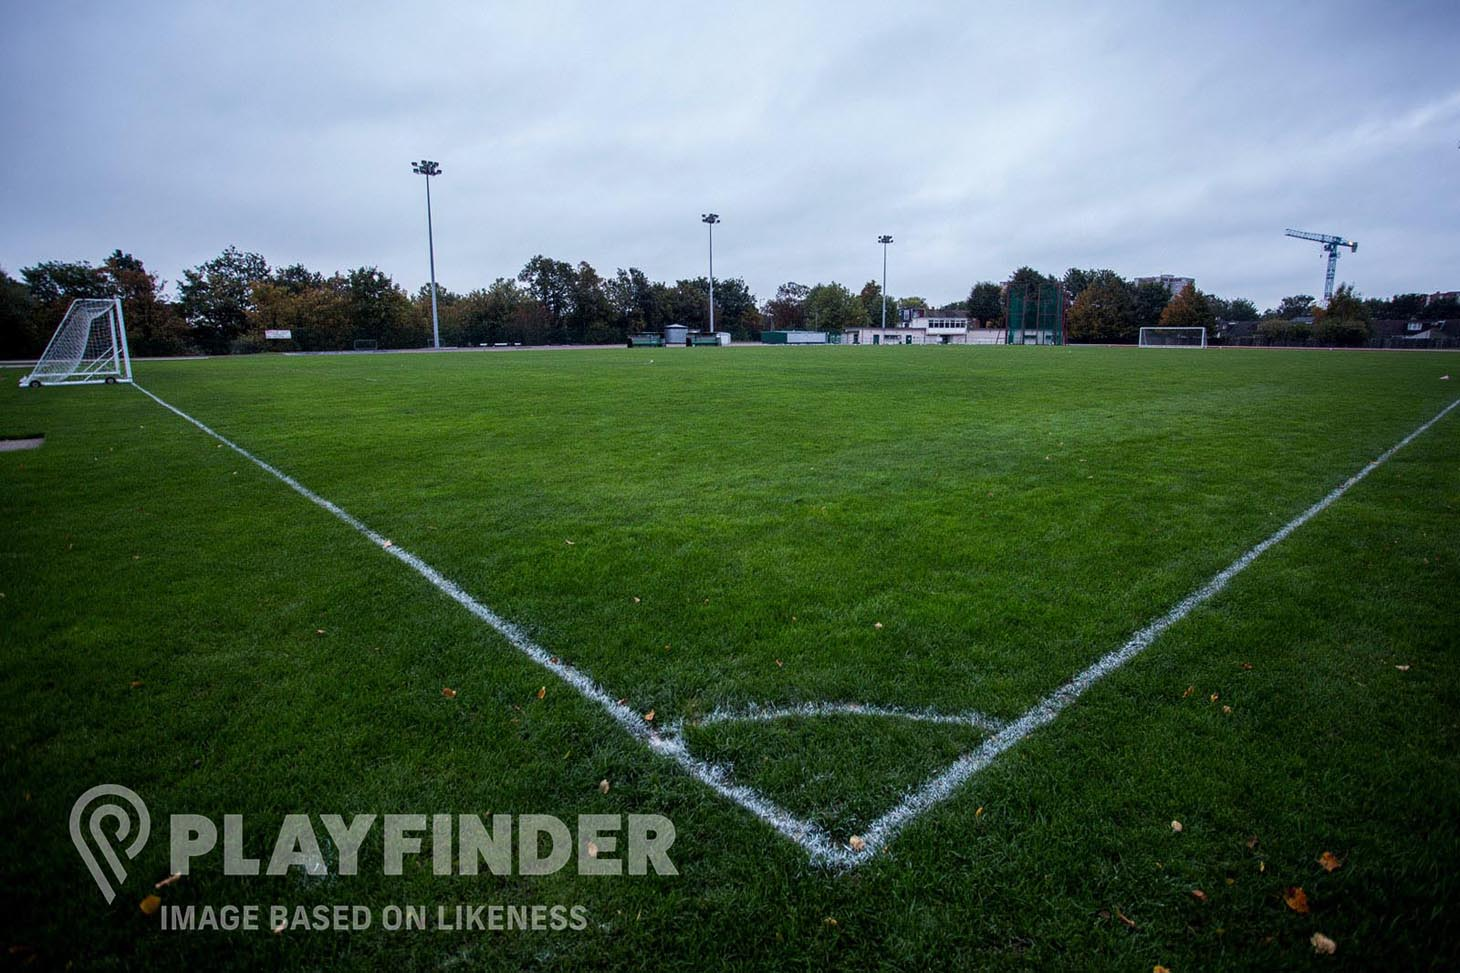 Merseybank Playing Fields 11 a side | Grass football pitch